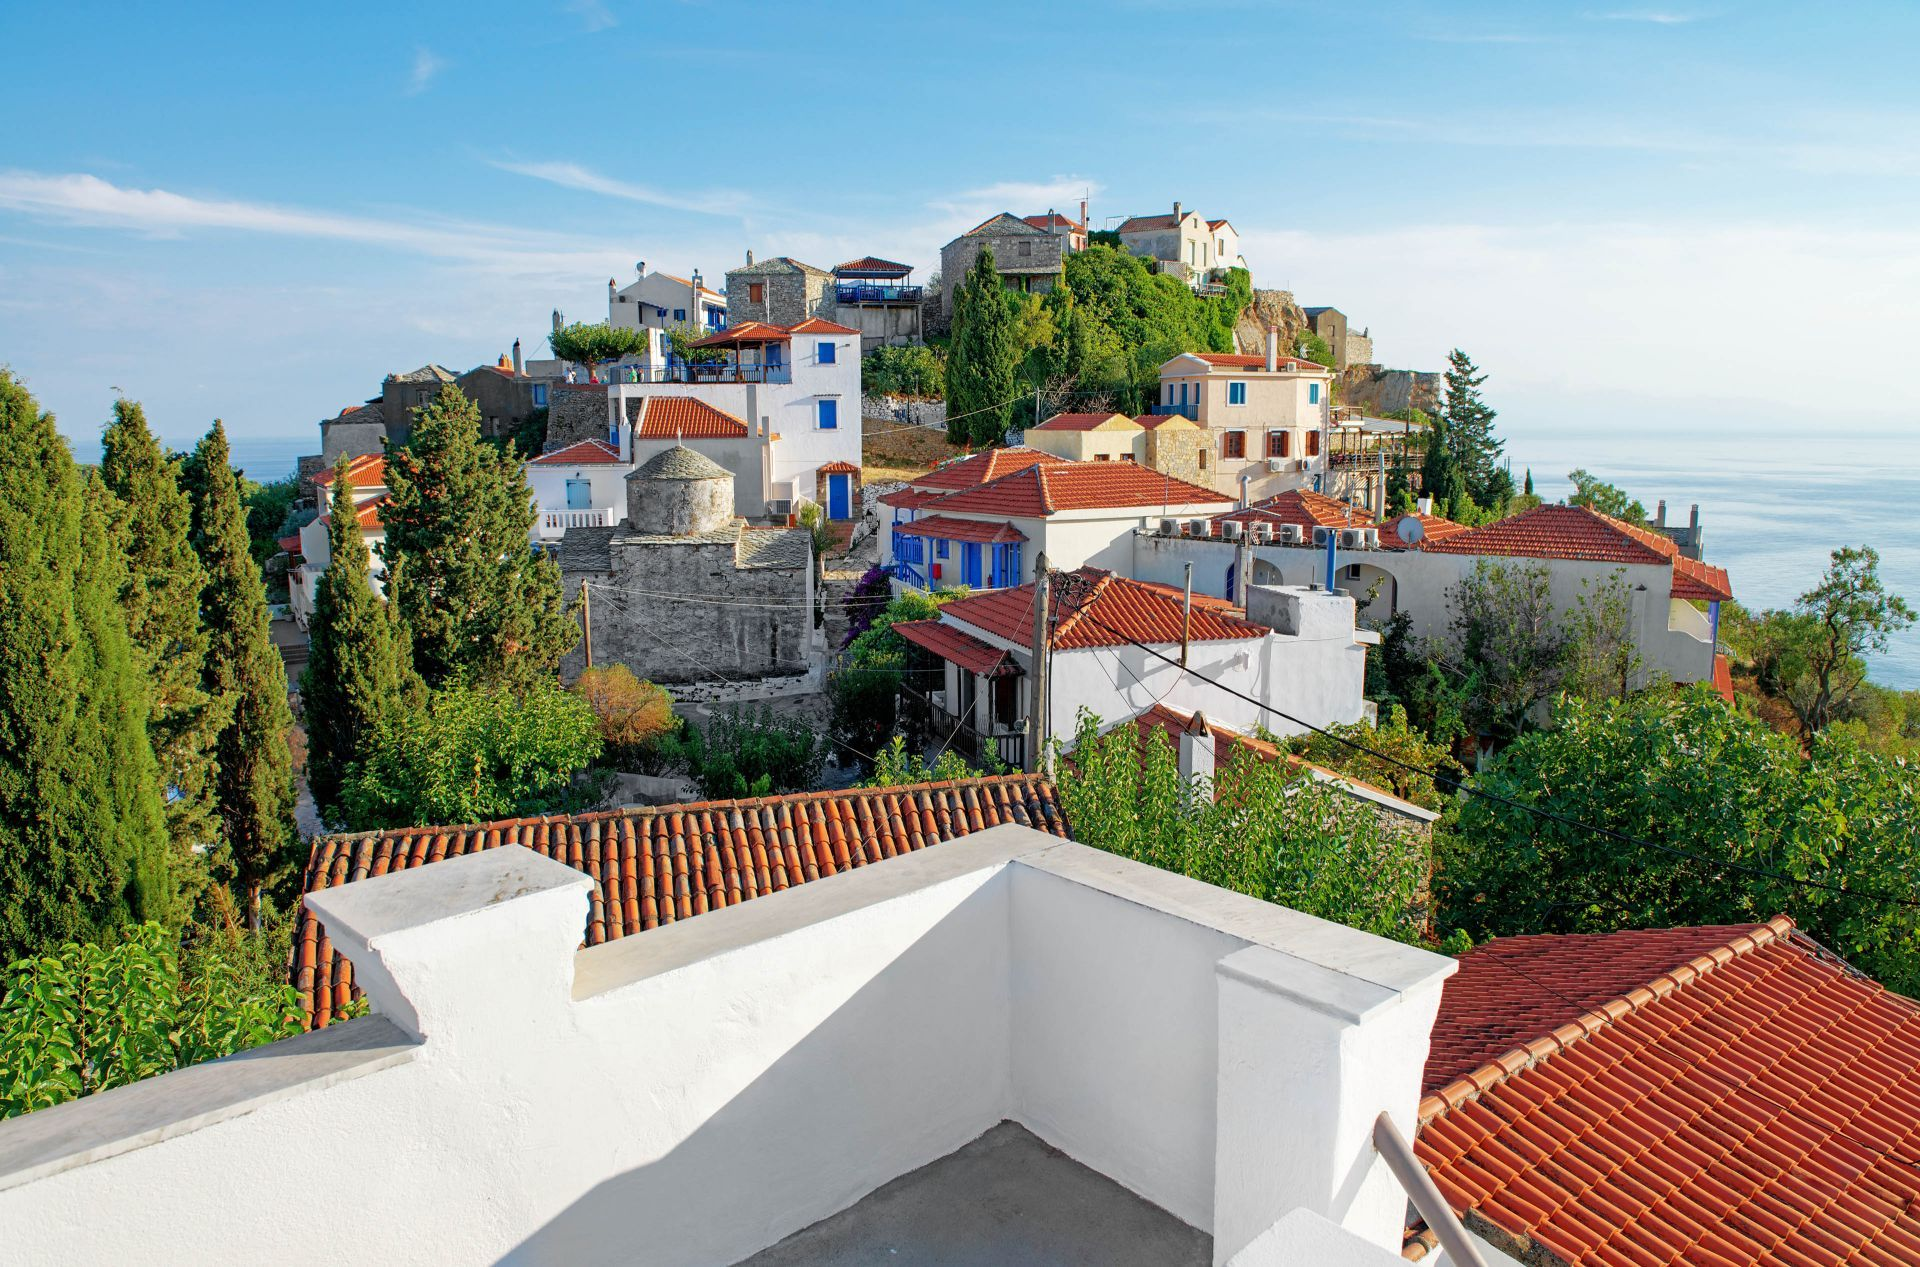 Sporades islands: Chora, the old town of Alonissos island